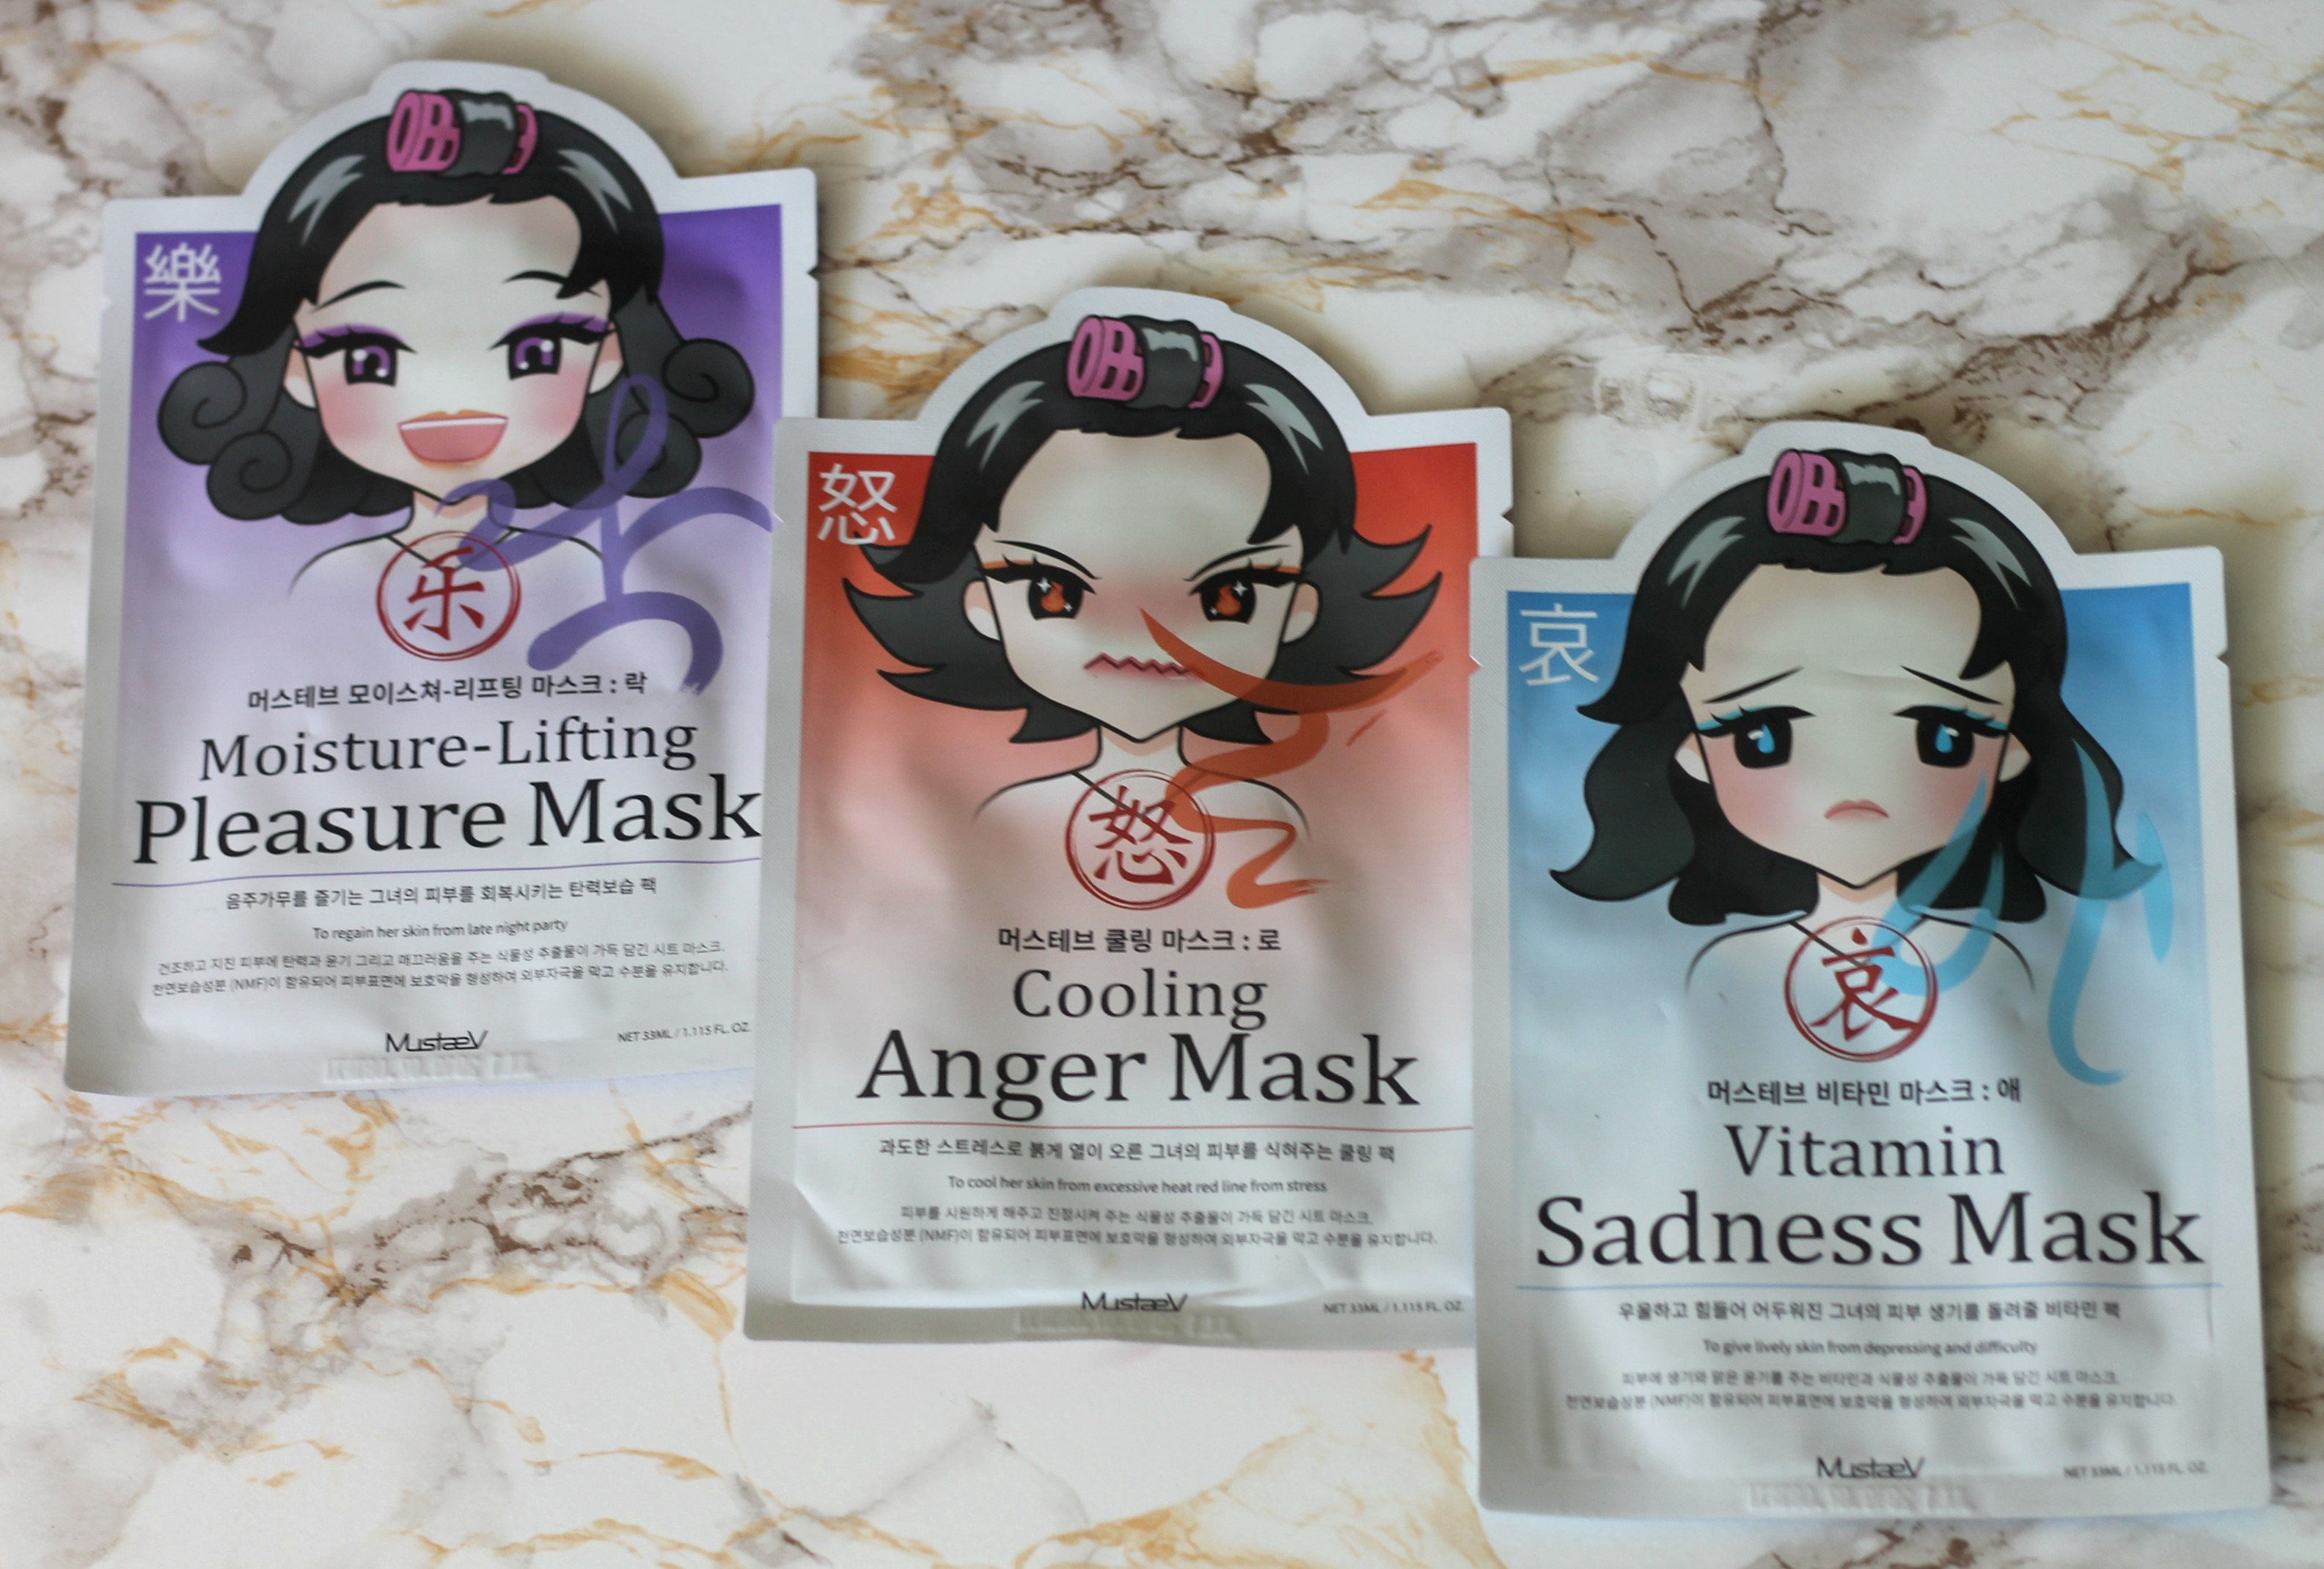 mustaev-skin-care-moisture-lifting-pleasure-mask-cooling-anger-mask-vitamin-sadness-mask-mood-therapy-mask-beauty-and-the-beat-blog